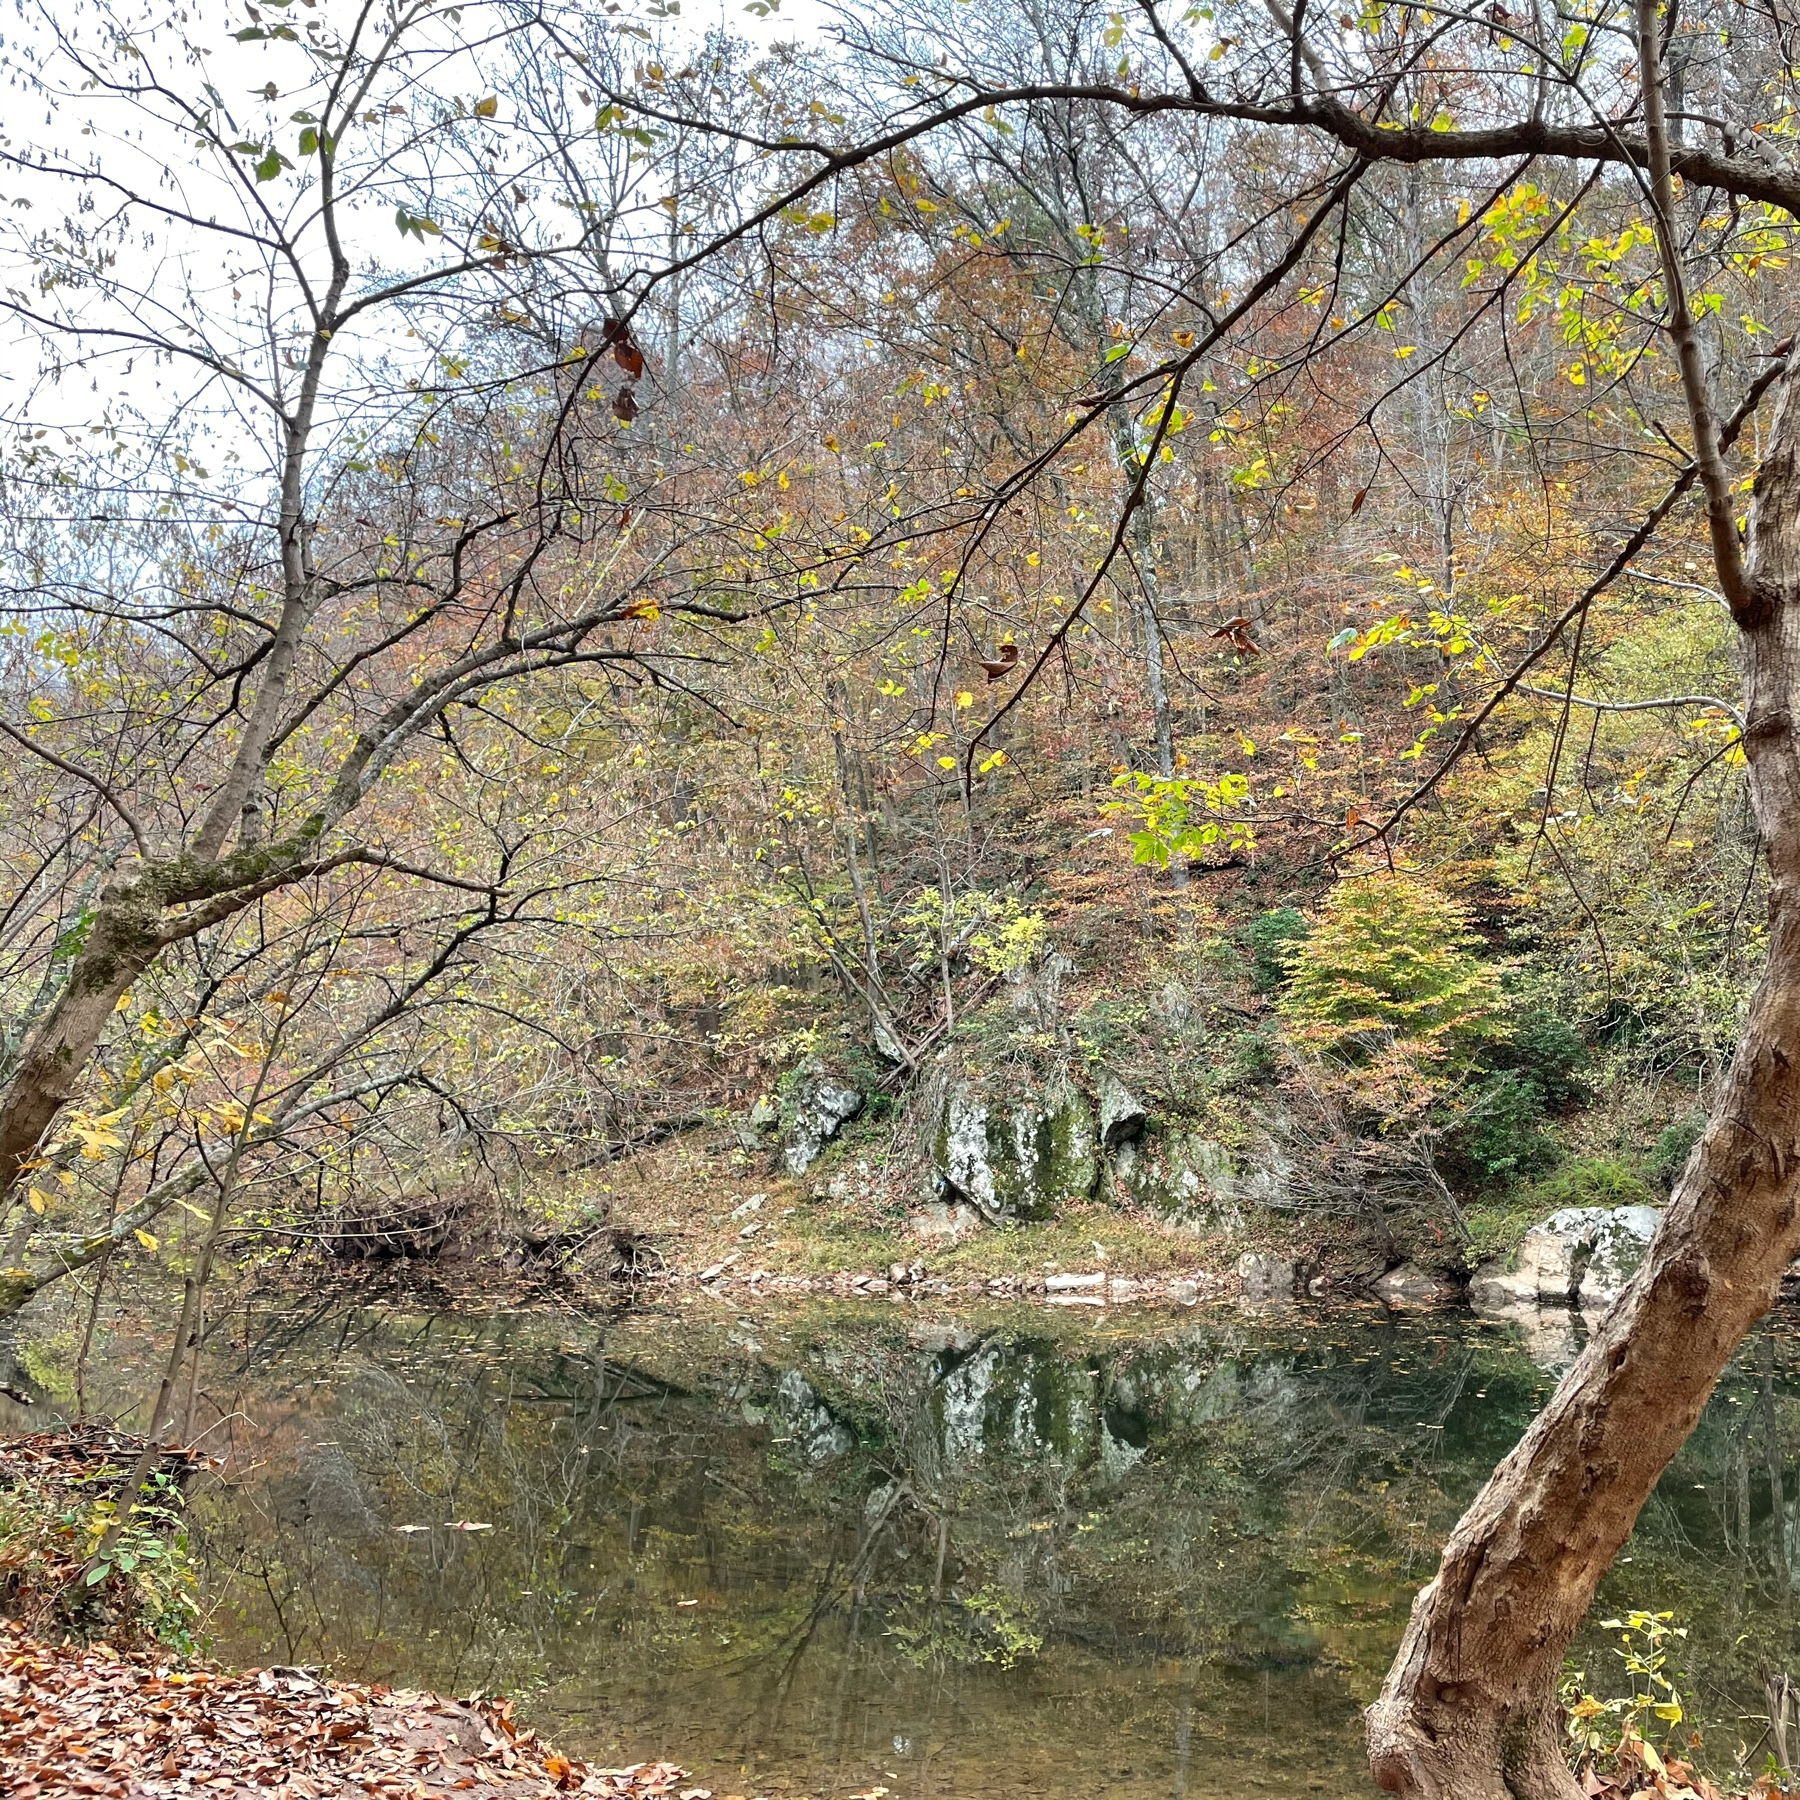 River among trees in the fall, although most leaves have fallen.